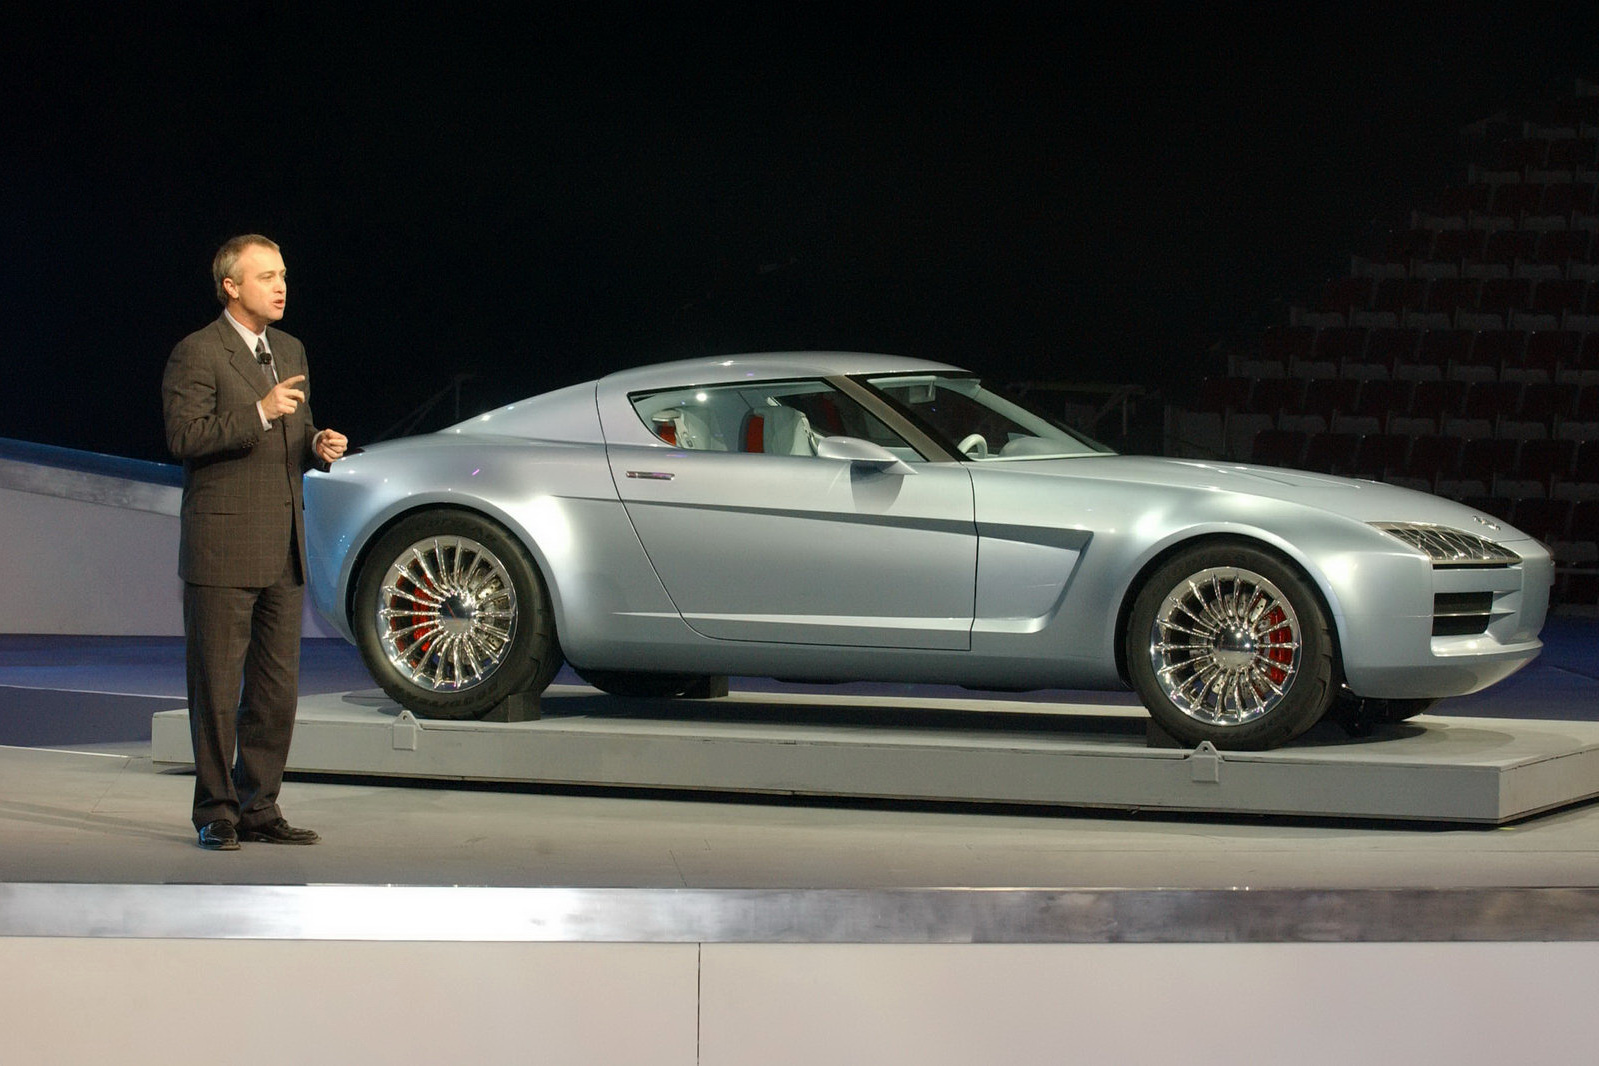 Mercury S 2003 Messenger Sports Coupe Concept Also Up For